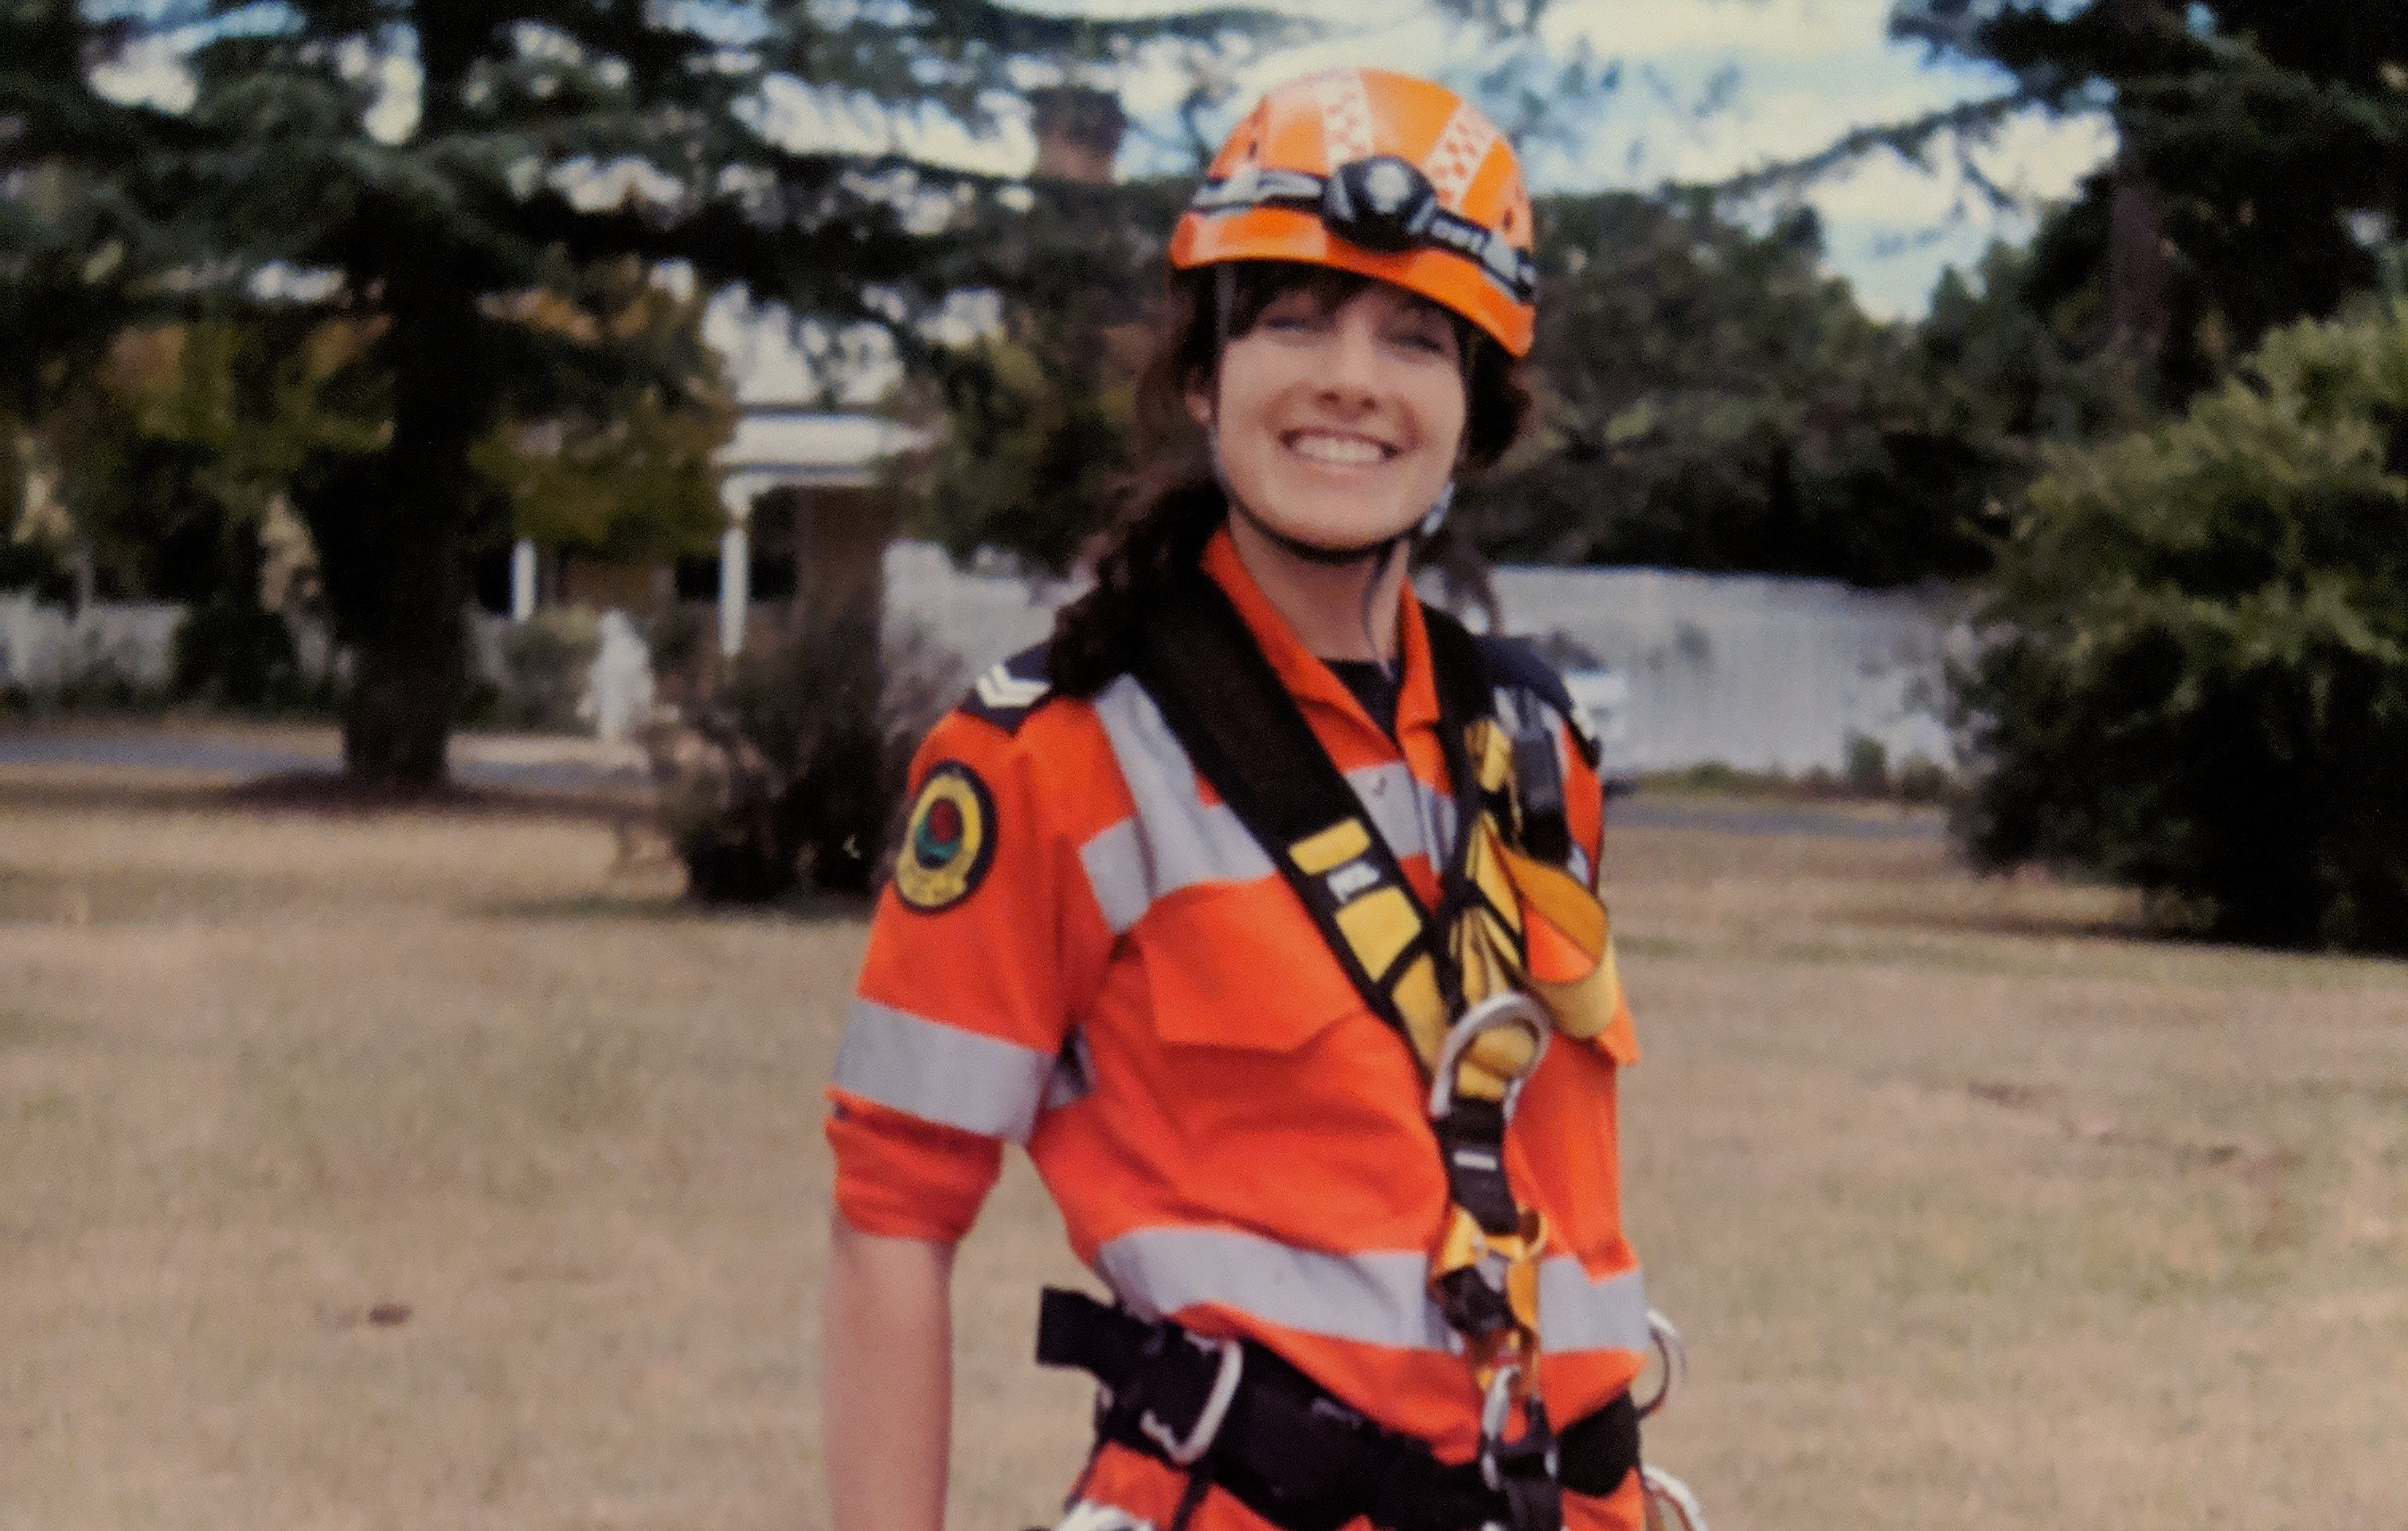 Young Armidale Volunteer Becomes Paramedic after Joining NSW SES